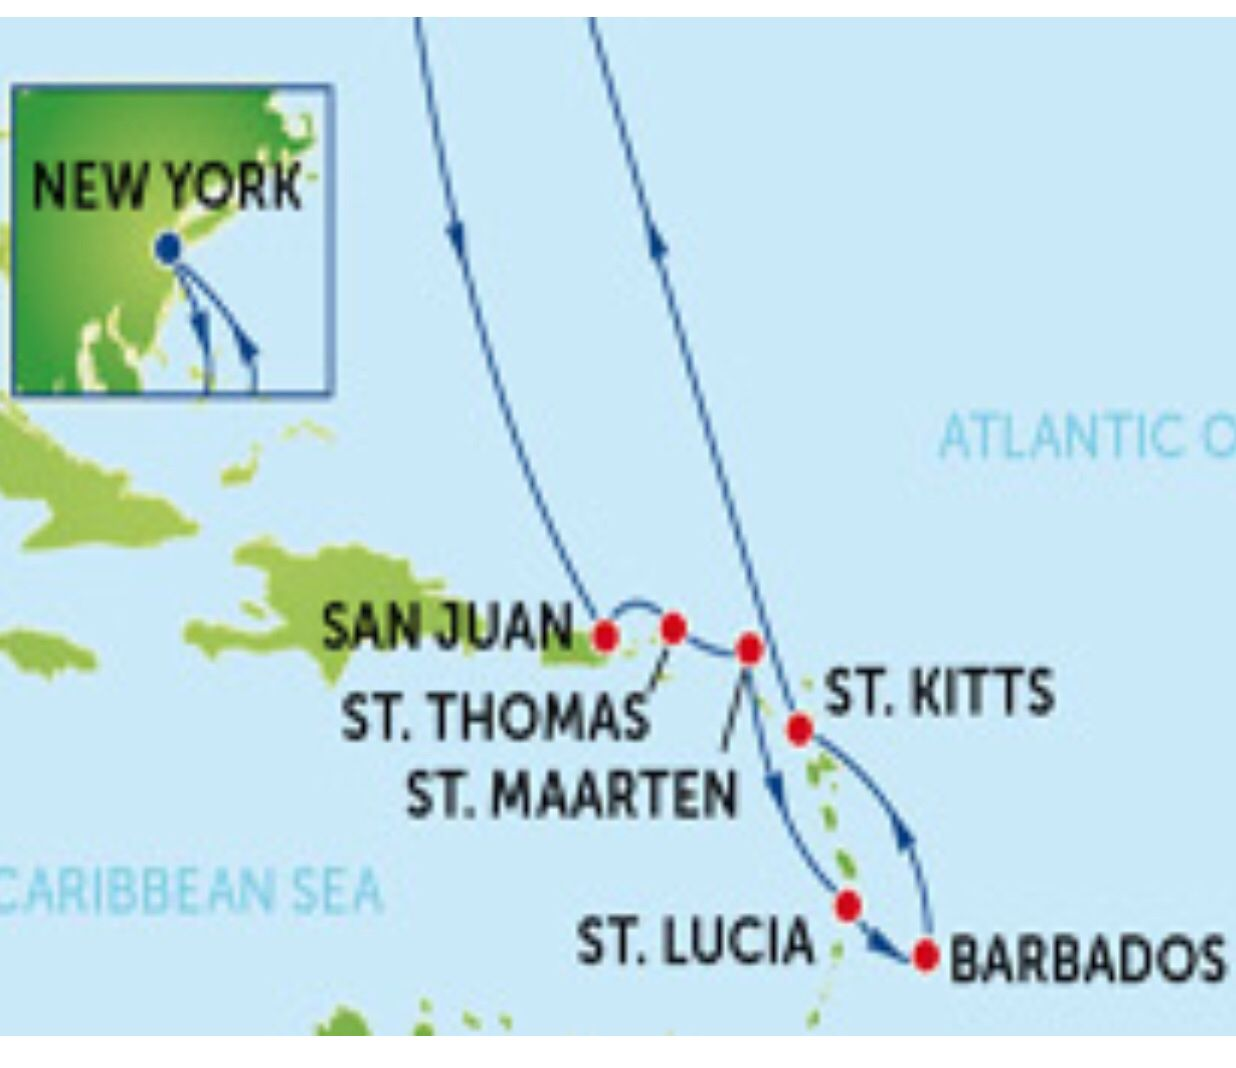 Route map from NCL website